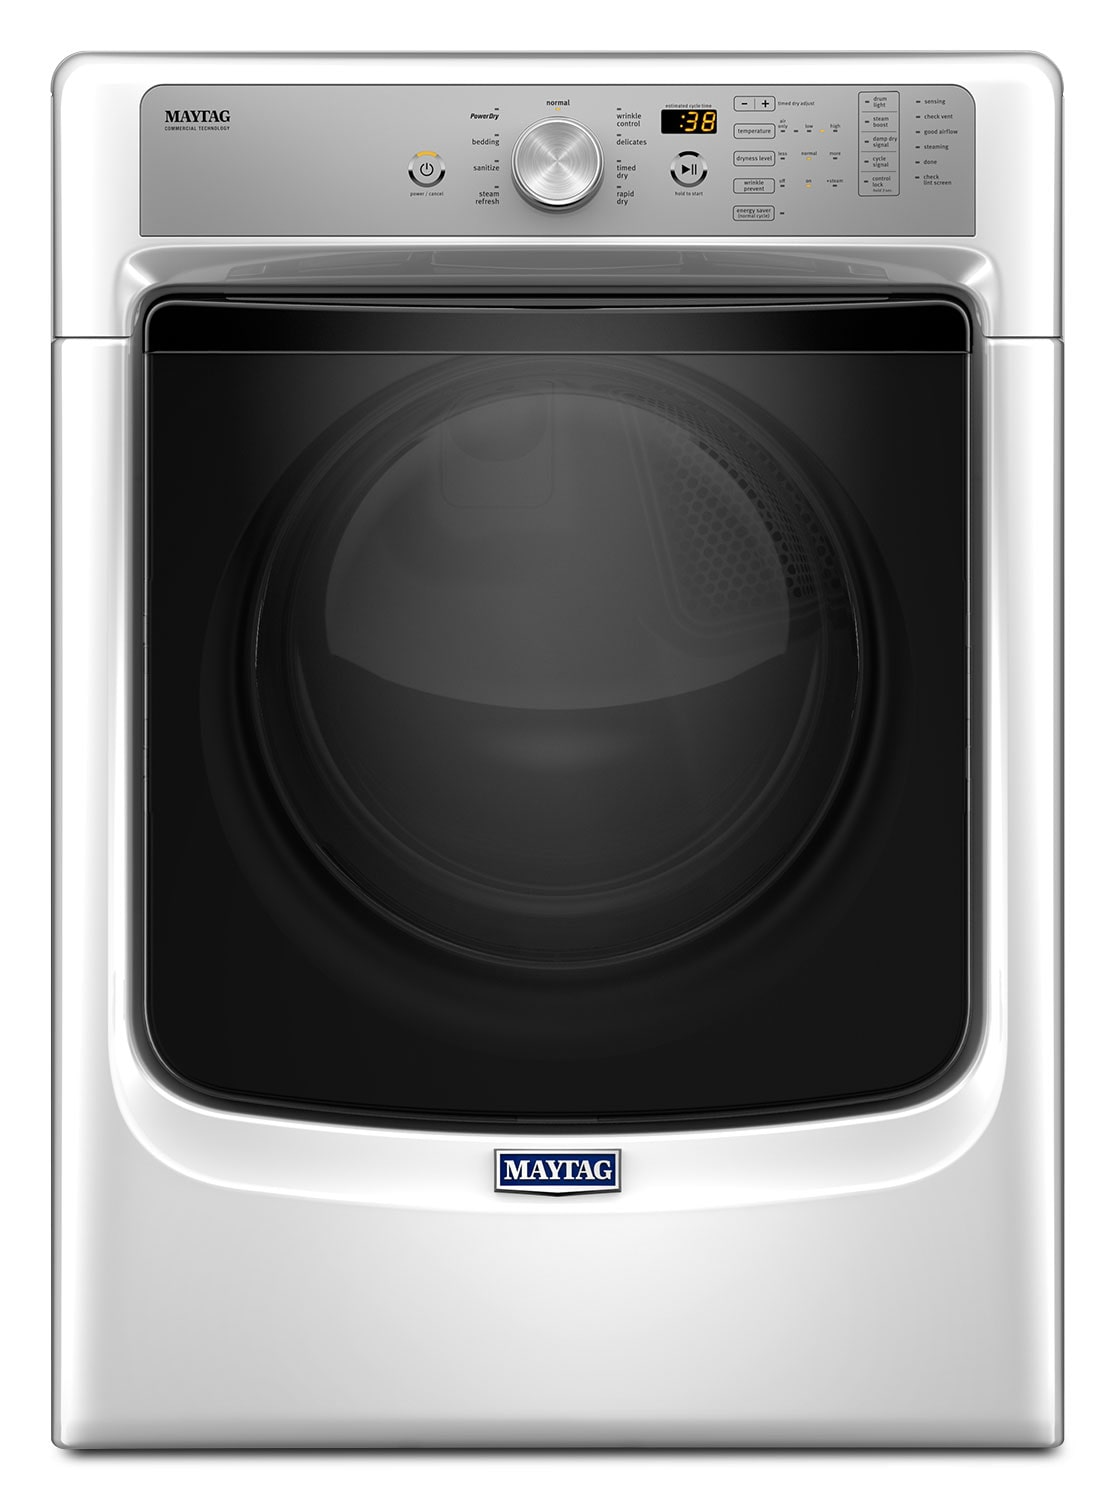 Washers and Dryers - Maytag White Electric Dryer (7.4 Cu. Ft.) - YMED5500FW